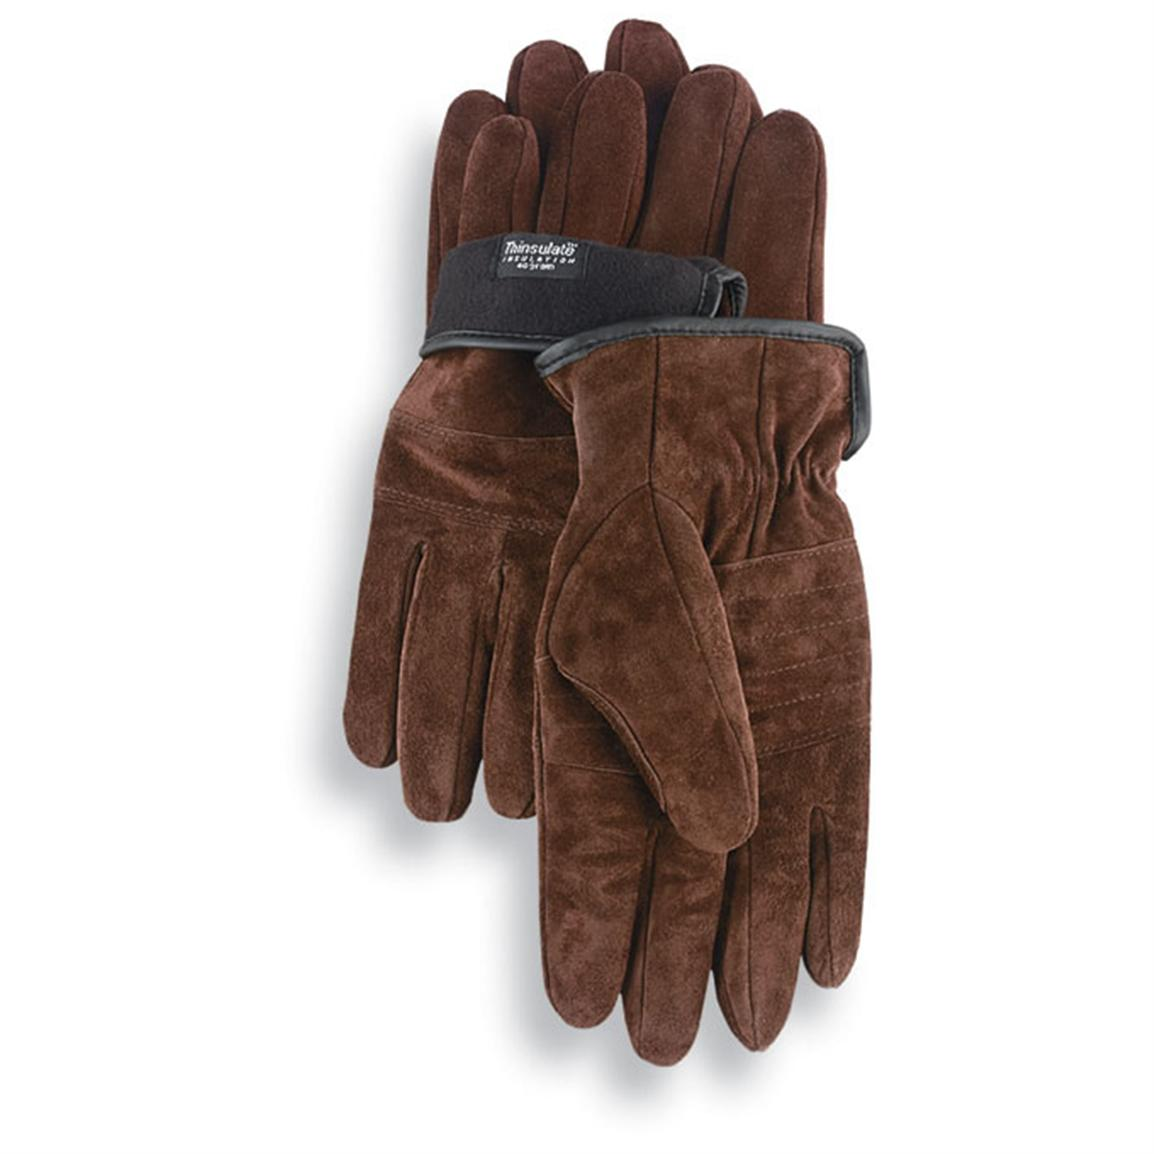 2 prs 80 gram thinsulate insulation goatskin leather work gloves brown